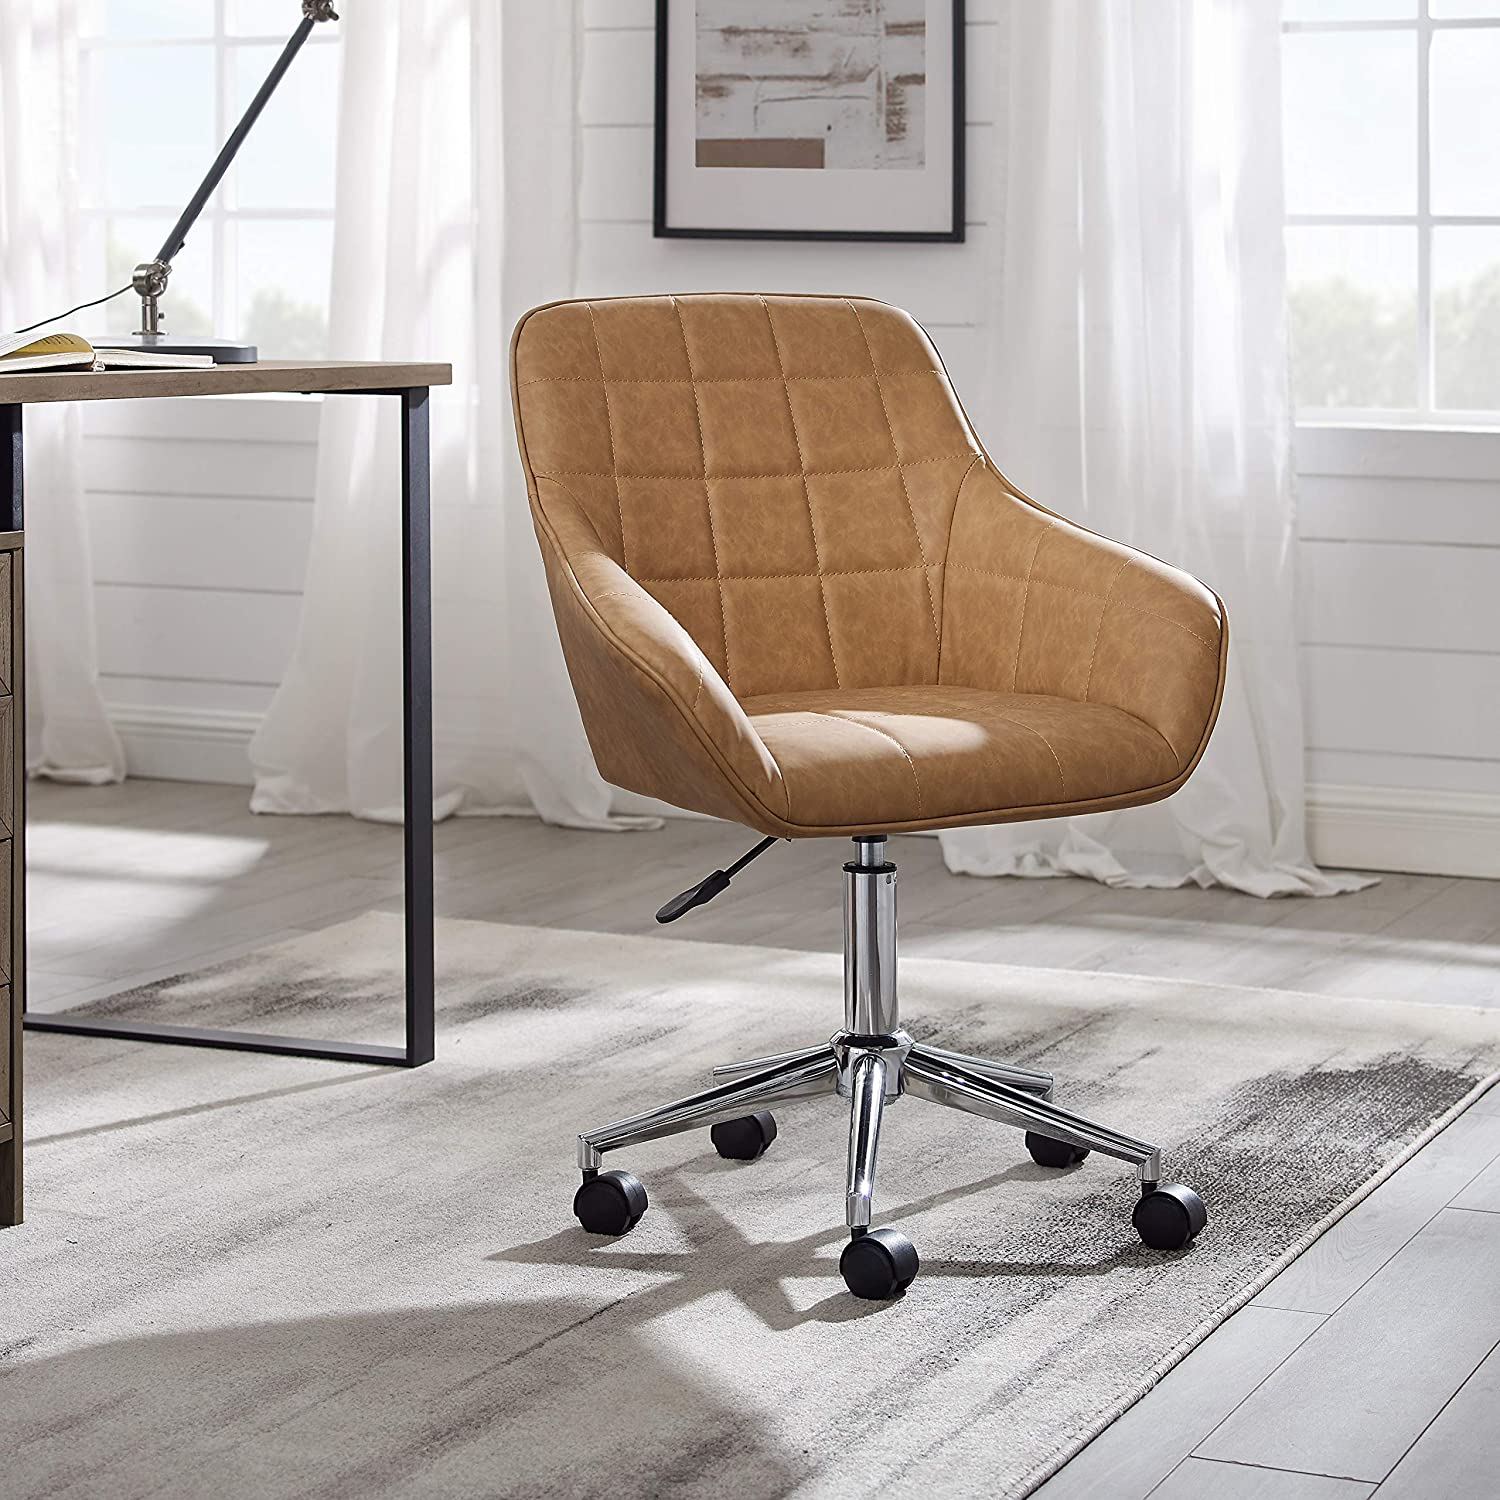 Volans Cute Desk Chair, Modern Simple Mid-Back Leather Swivel Home Office Task Chair with Arms and Adjustable Height for Small Spaces Home Office Living Room Bedroom, Brown